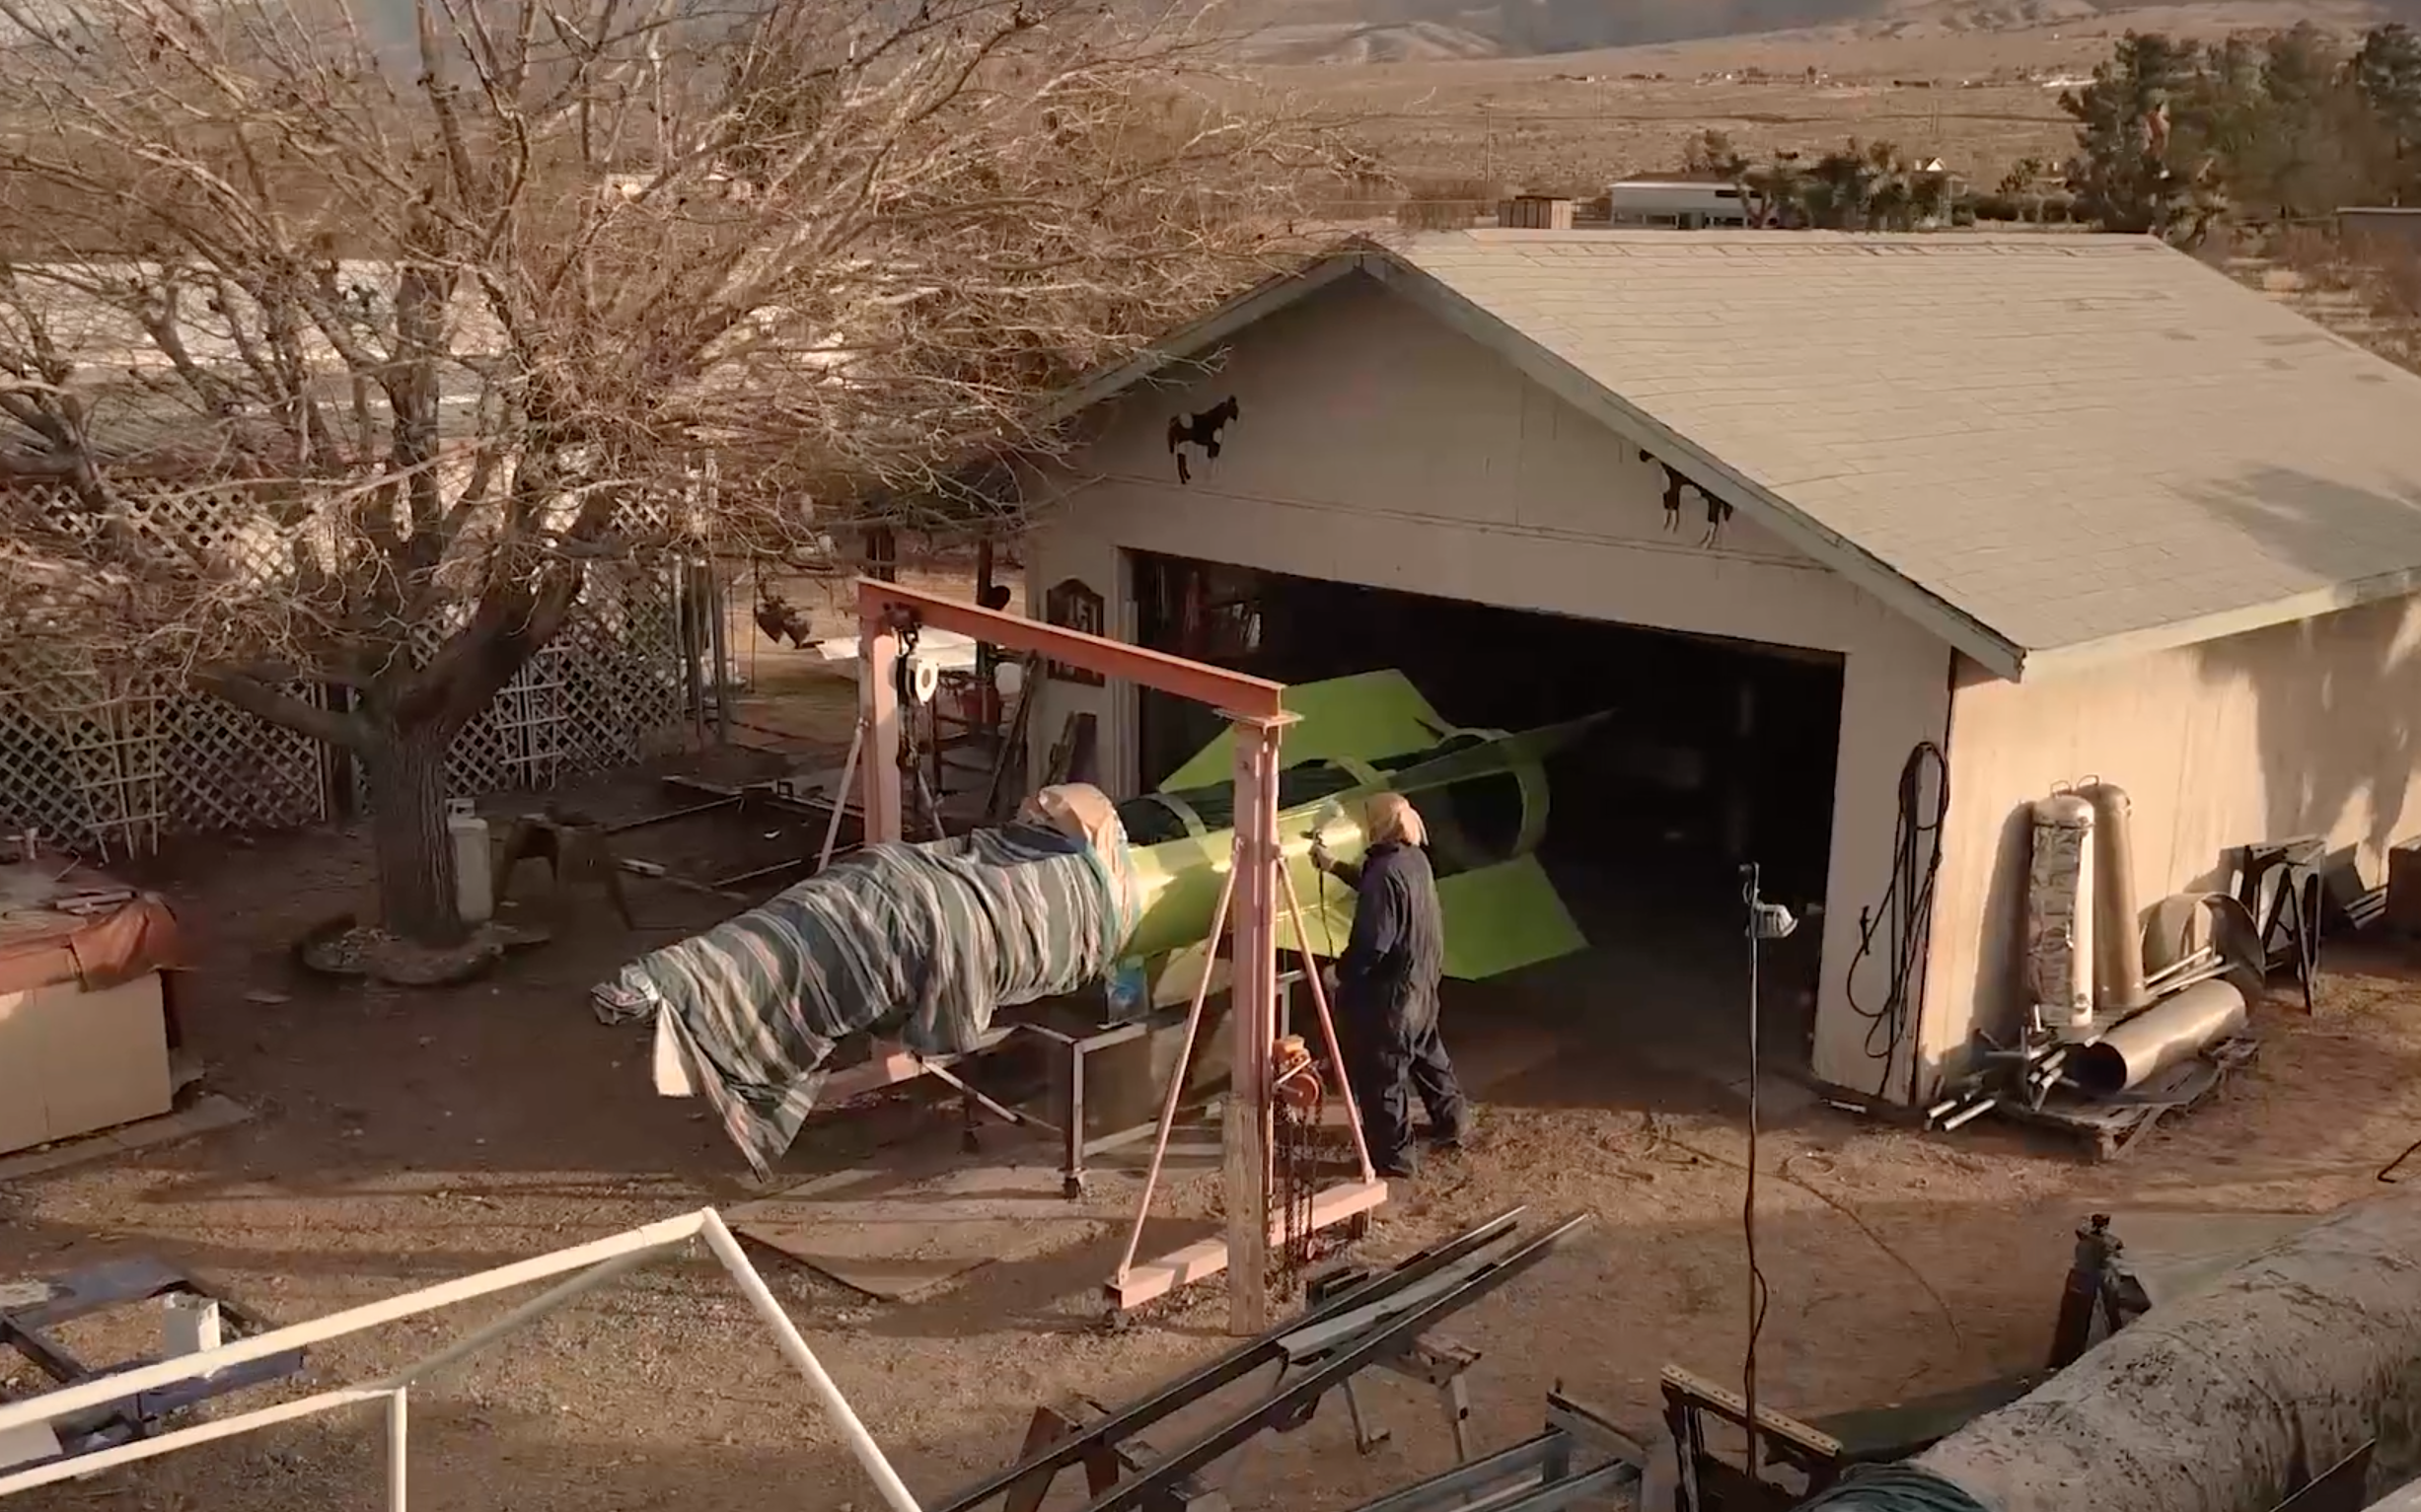 'Mad Mike' paints the rocket at his home in Apple Valley, CA.